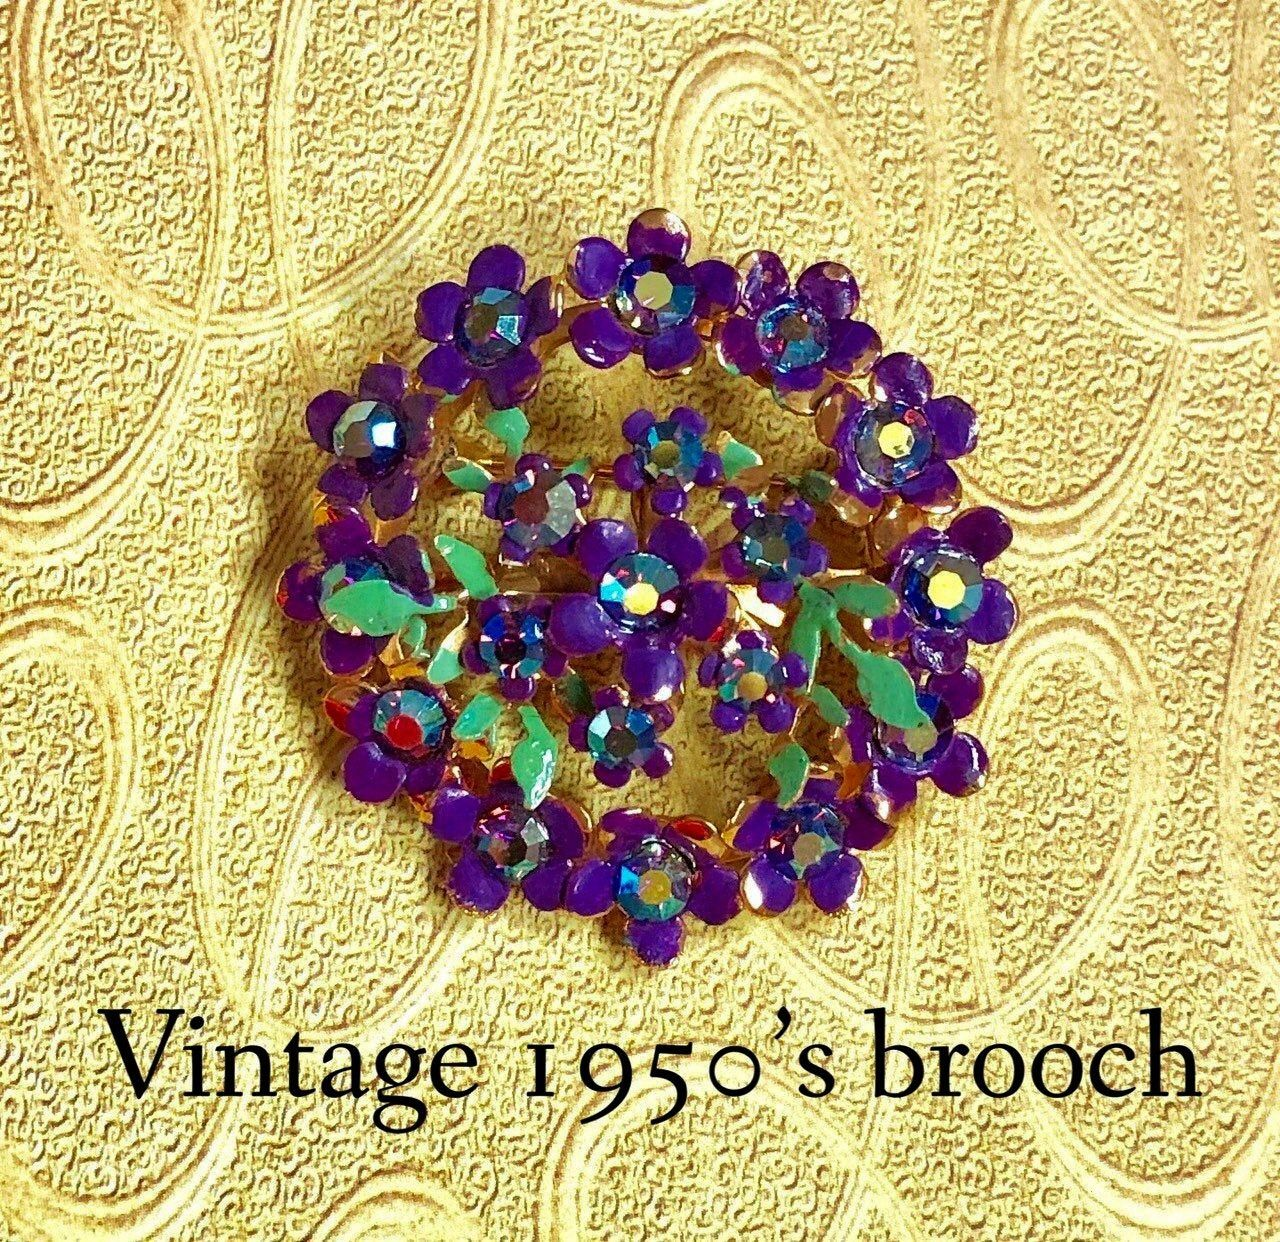 jewellery 1950s gold tone aurora borealis brooch retro pin purple pansies costume jewelry vintage brooch Excited to share this item from my shop Vintage jewellery 1950s g...